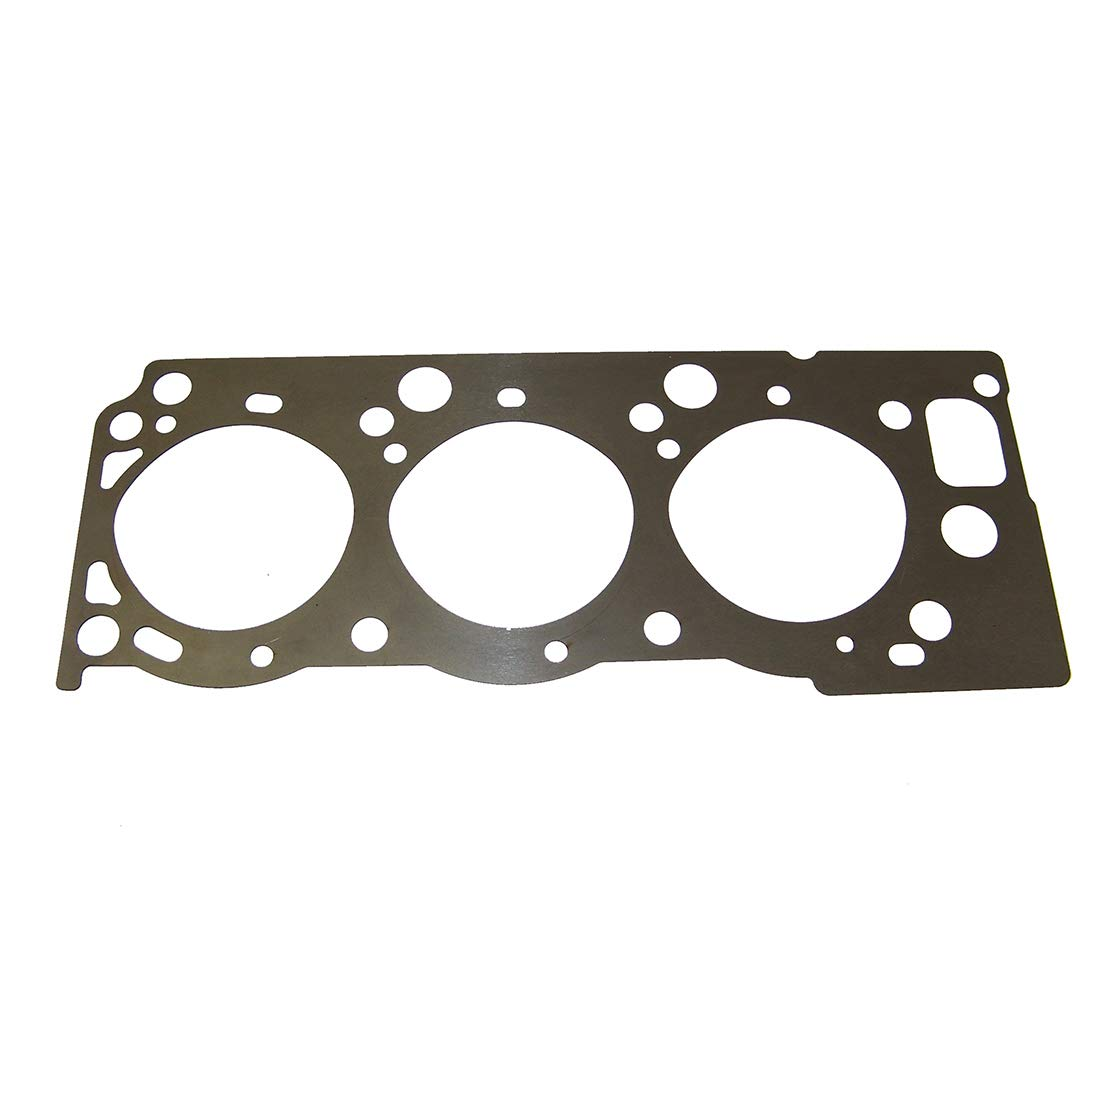 Pickup 3VZE 4Runner 12V Toyota SOHC 2959cc V6 DNJ HS950L Head Spacer Shim for 1988-1995 T100 3.0L